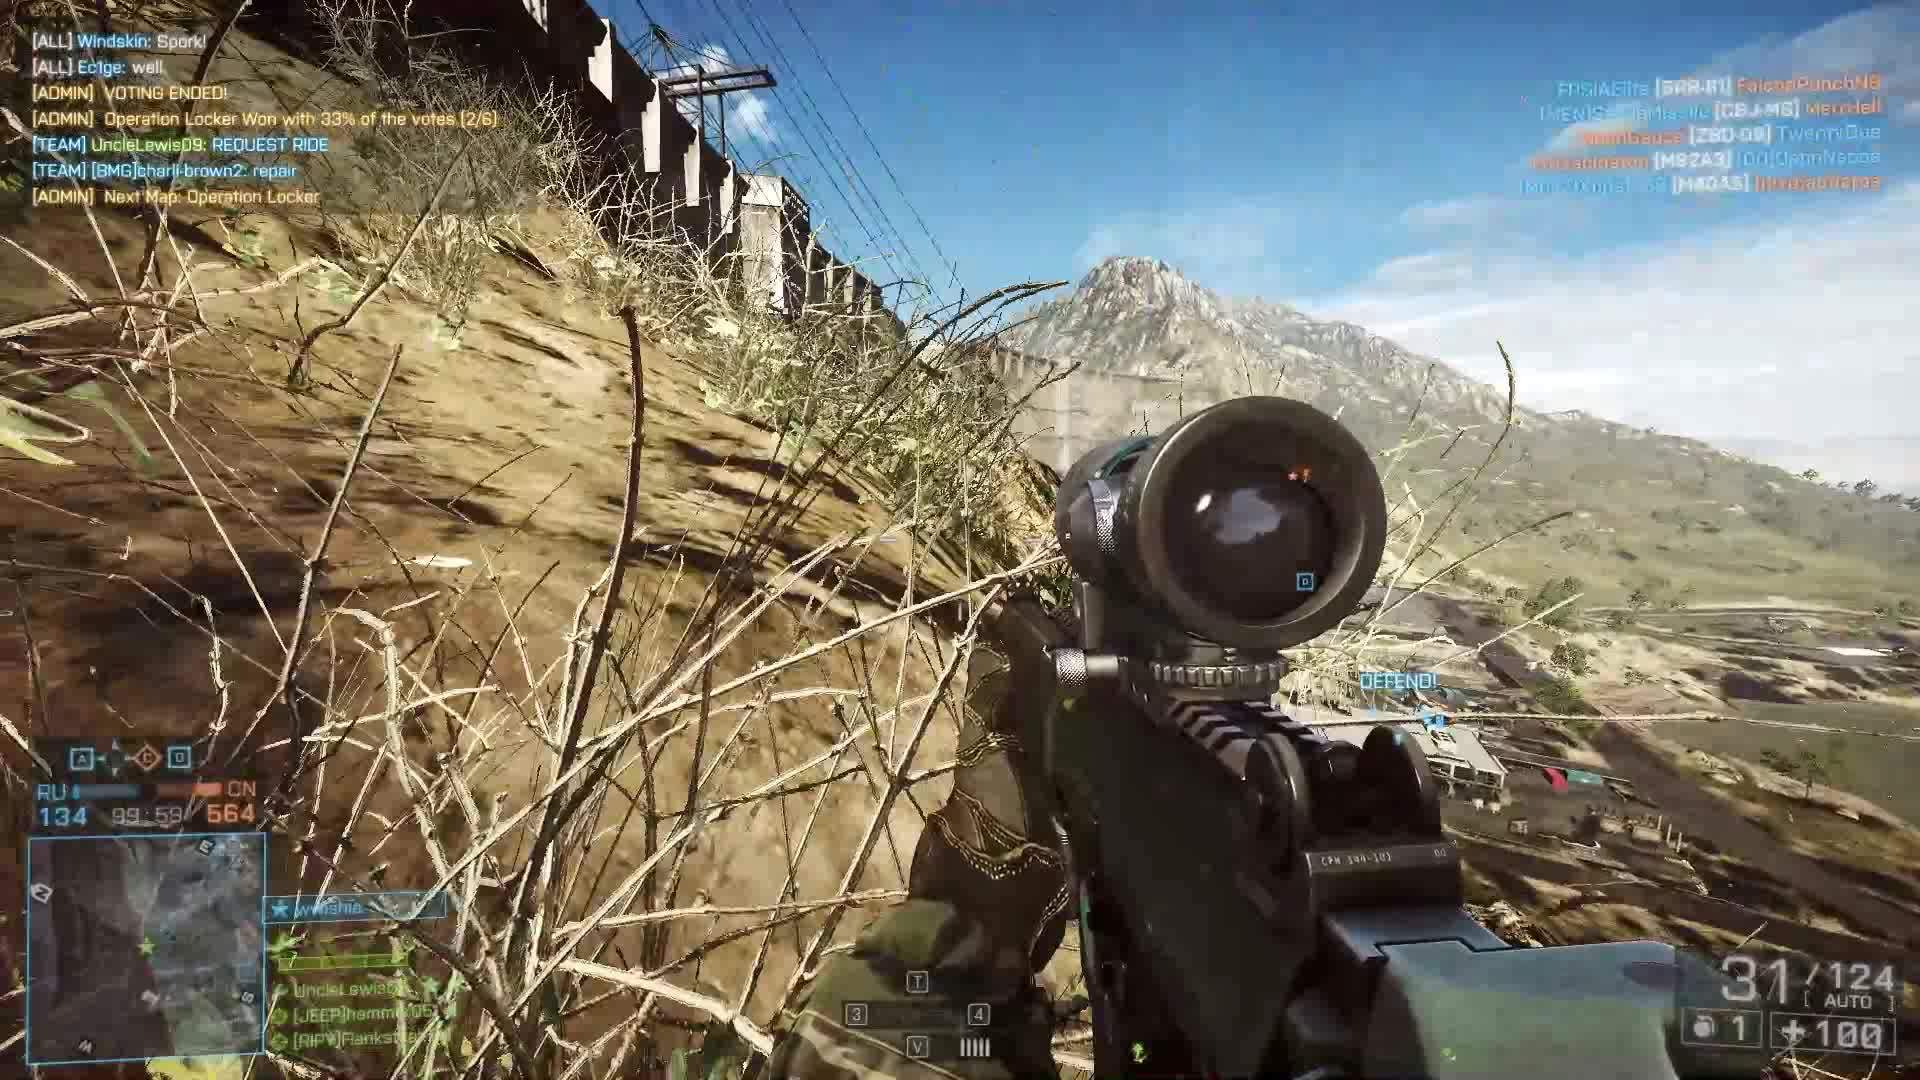 gamephysics, [Battlefield 4] When you hit the wrong button. (reddit) GIFs